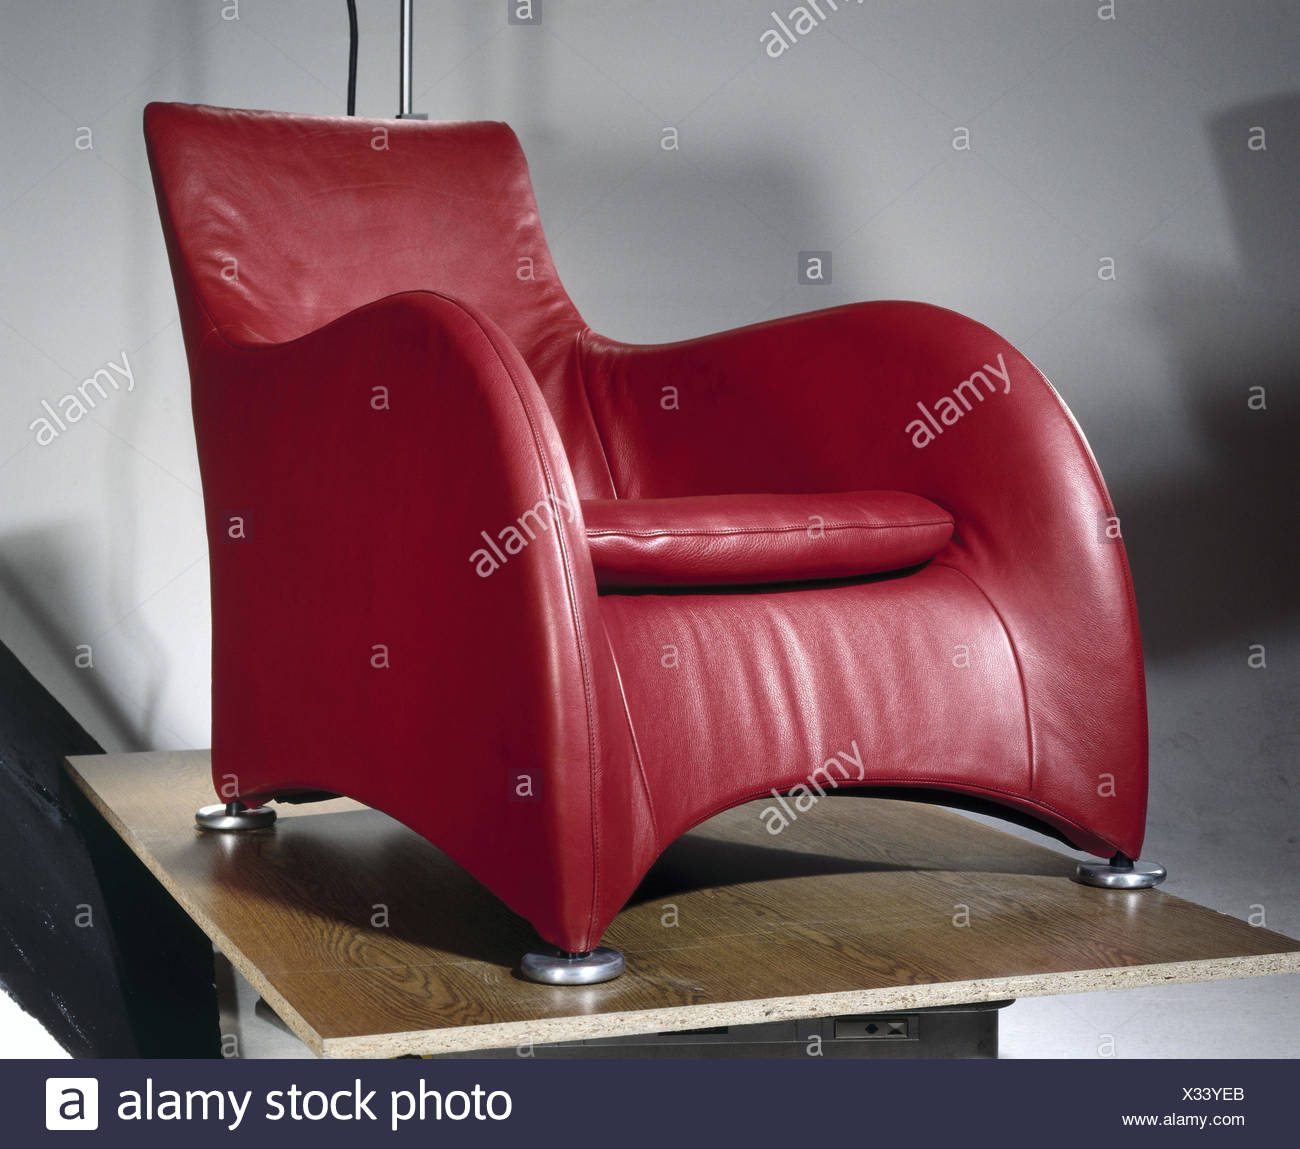 Designer Armchair Red White And Red Color Sofa Armchair Isolated